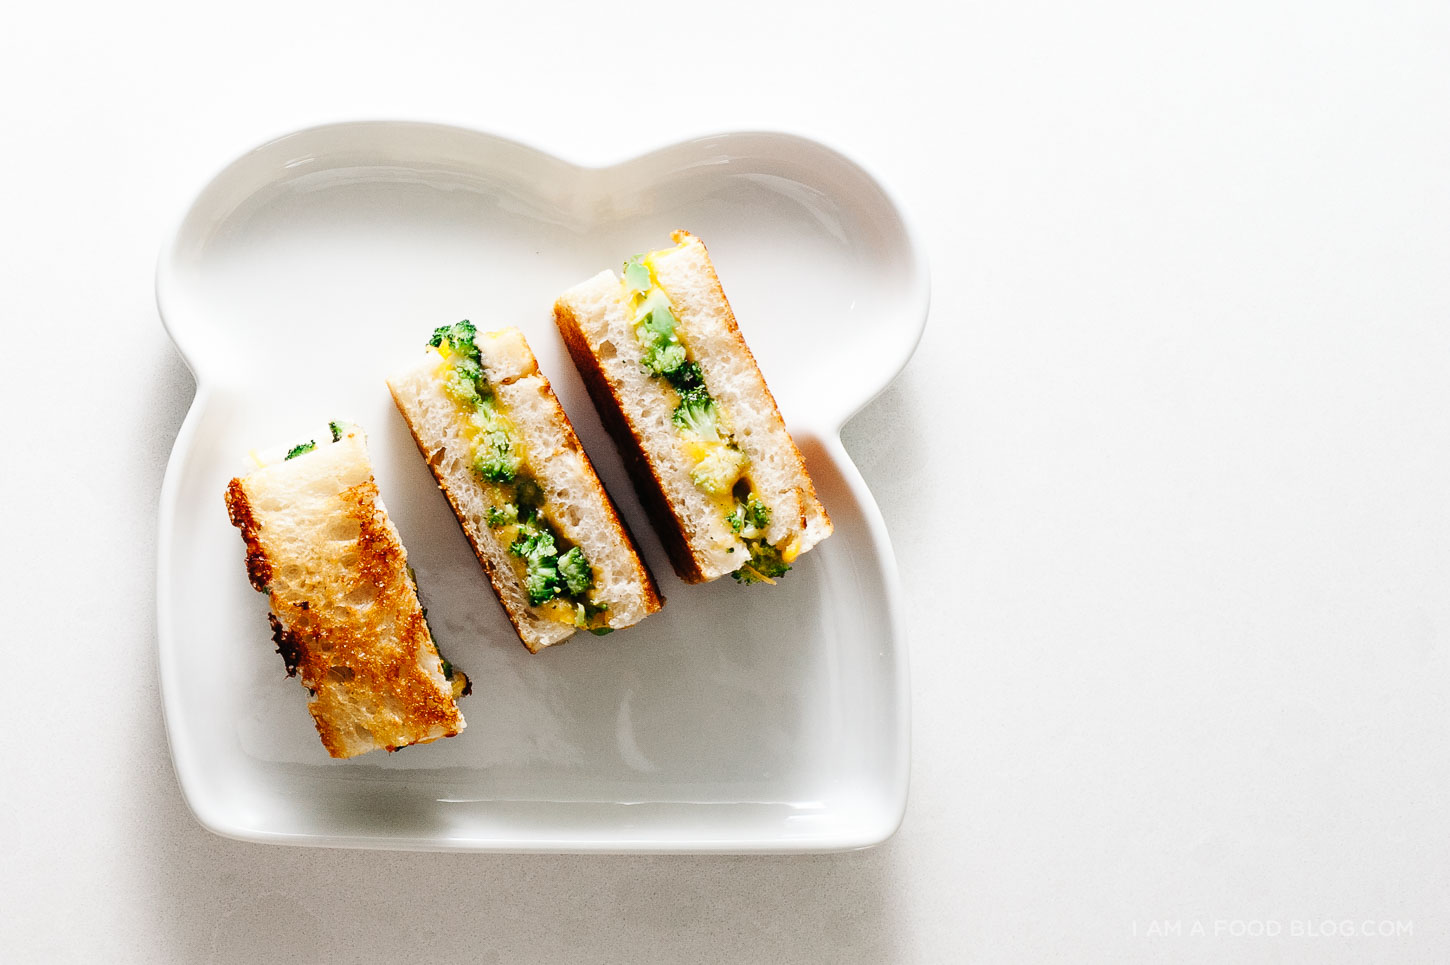 broccoli and cheddar grilled cheese recipe - www.iamafoodblog.com